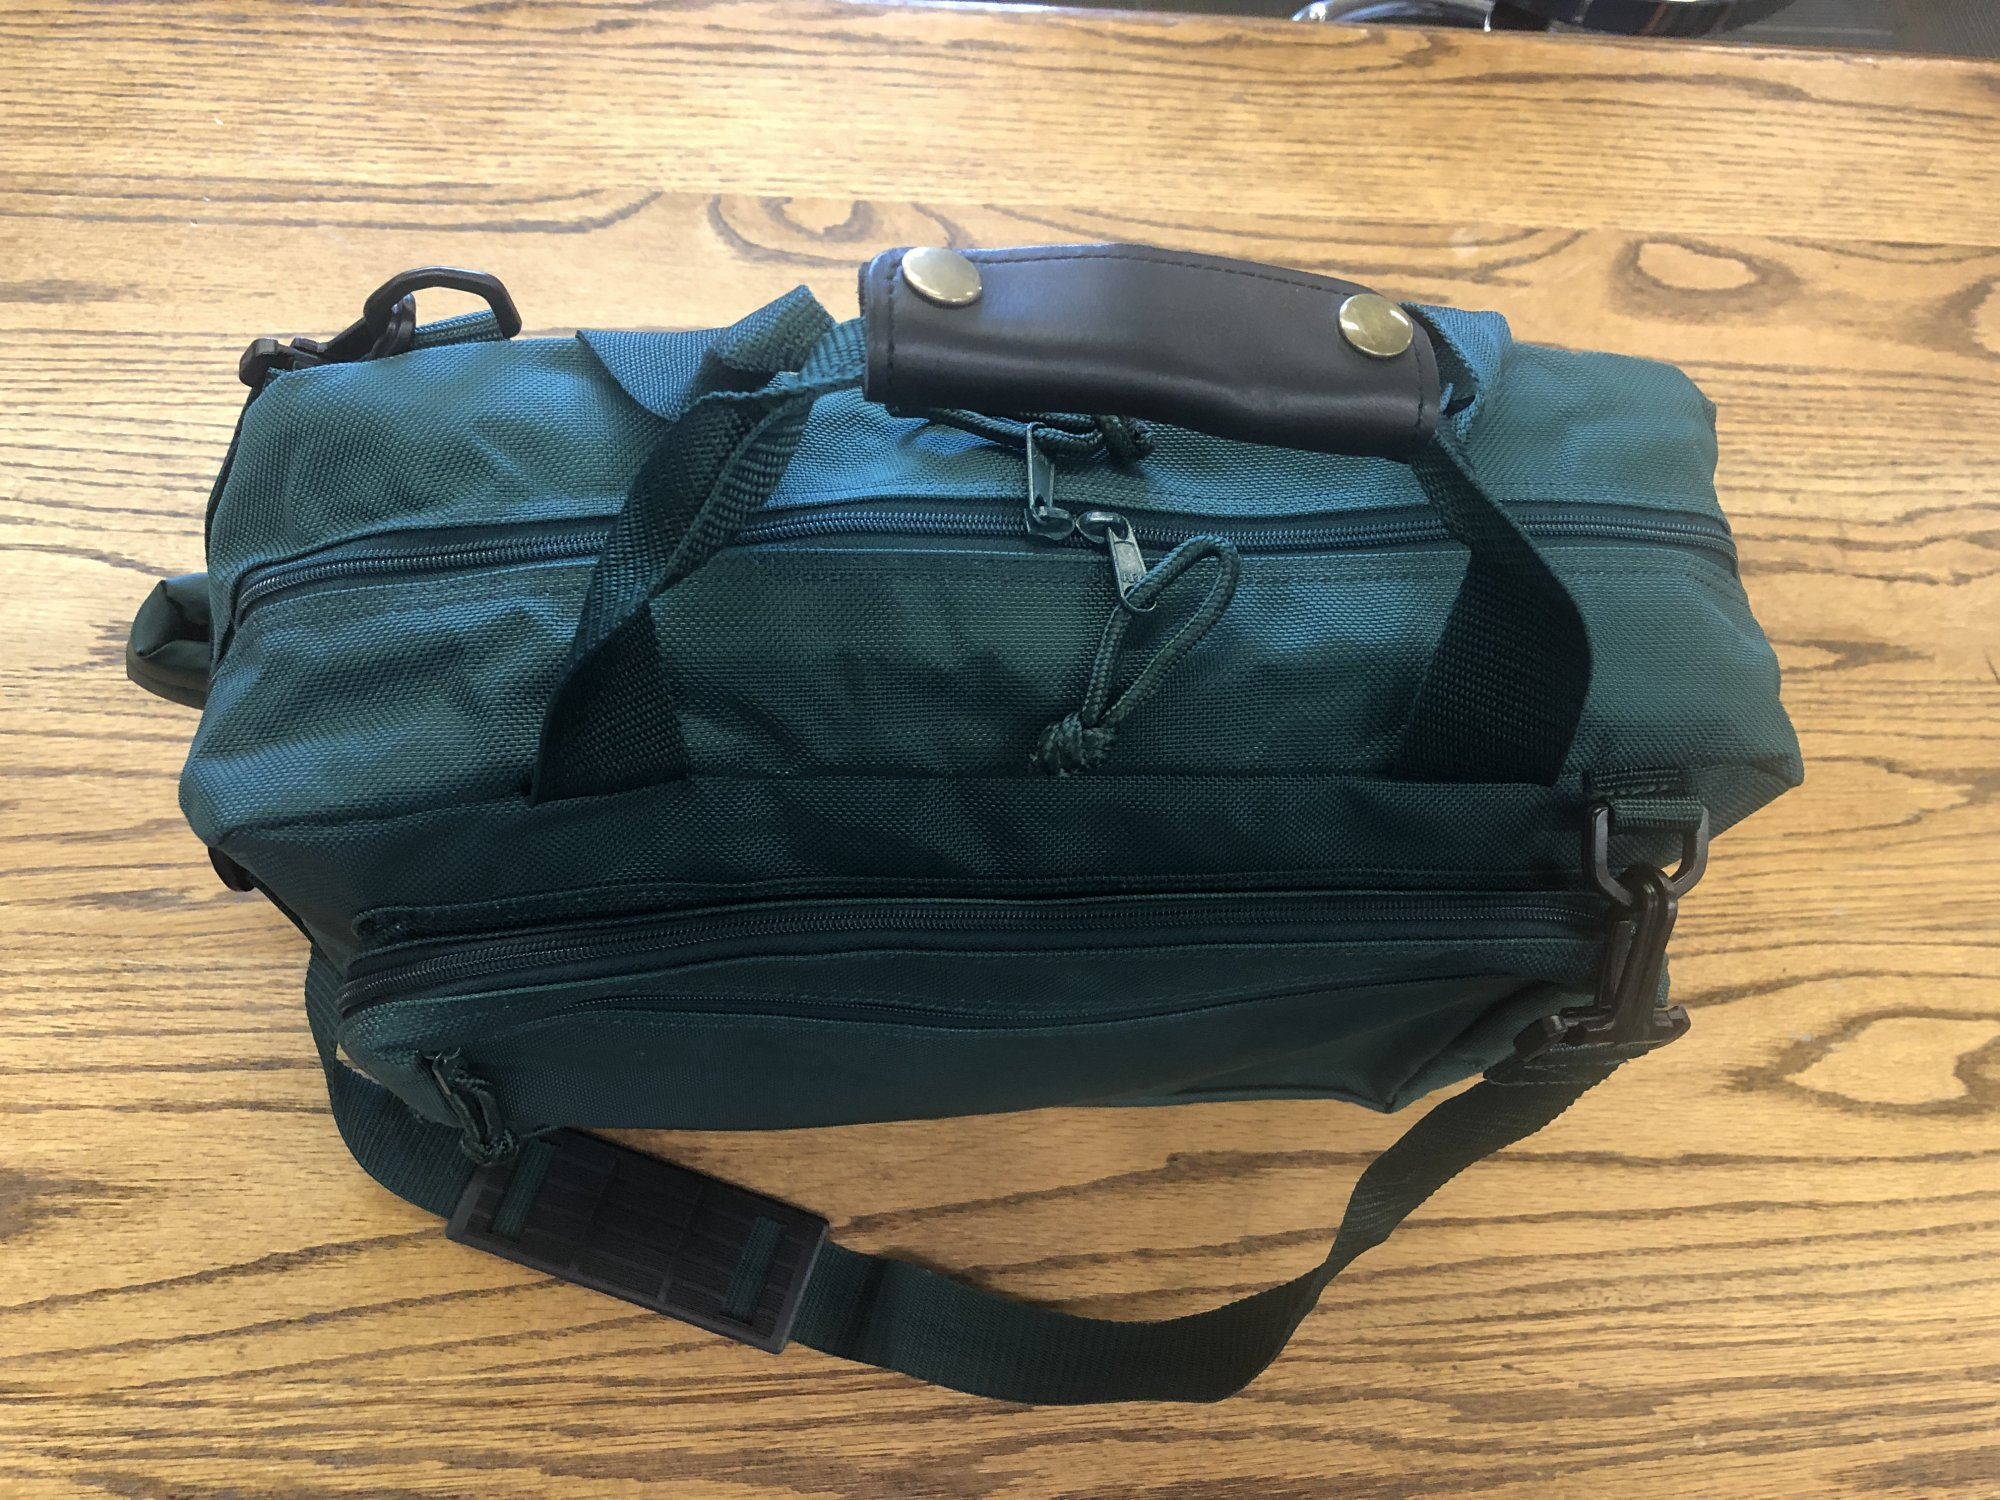 Convertible Green Backpack/Personal Case MCBP50GR -15.5 X 11.5 X 4.75